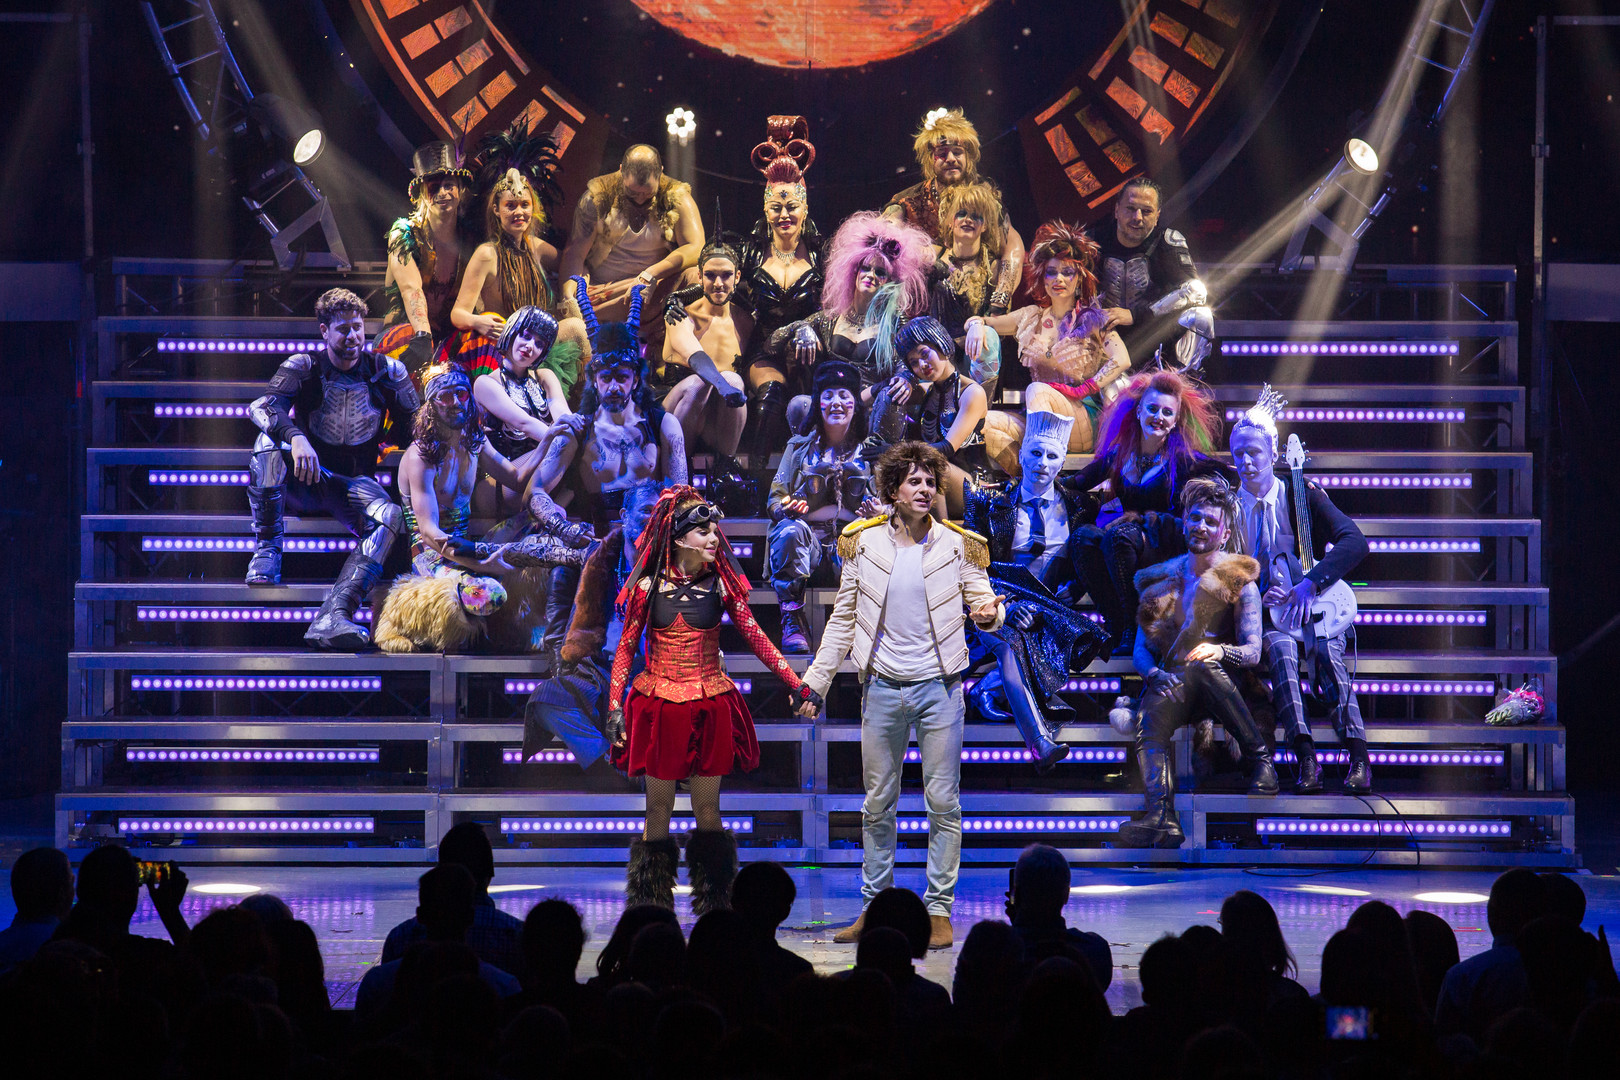 We Will Rock You 11 apr 2019-9871.jpg